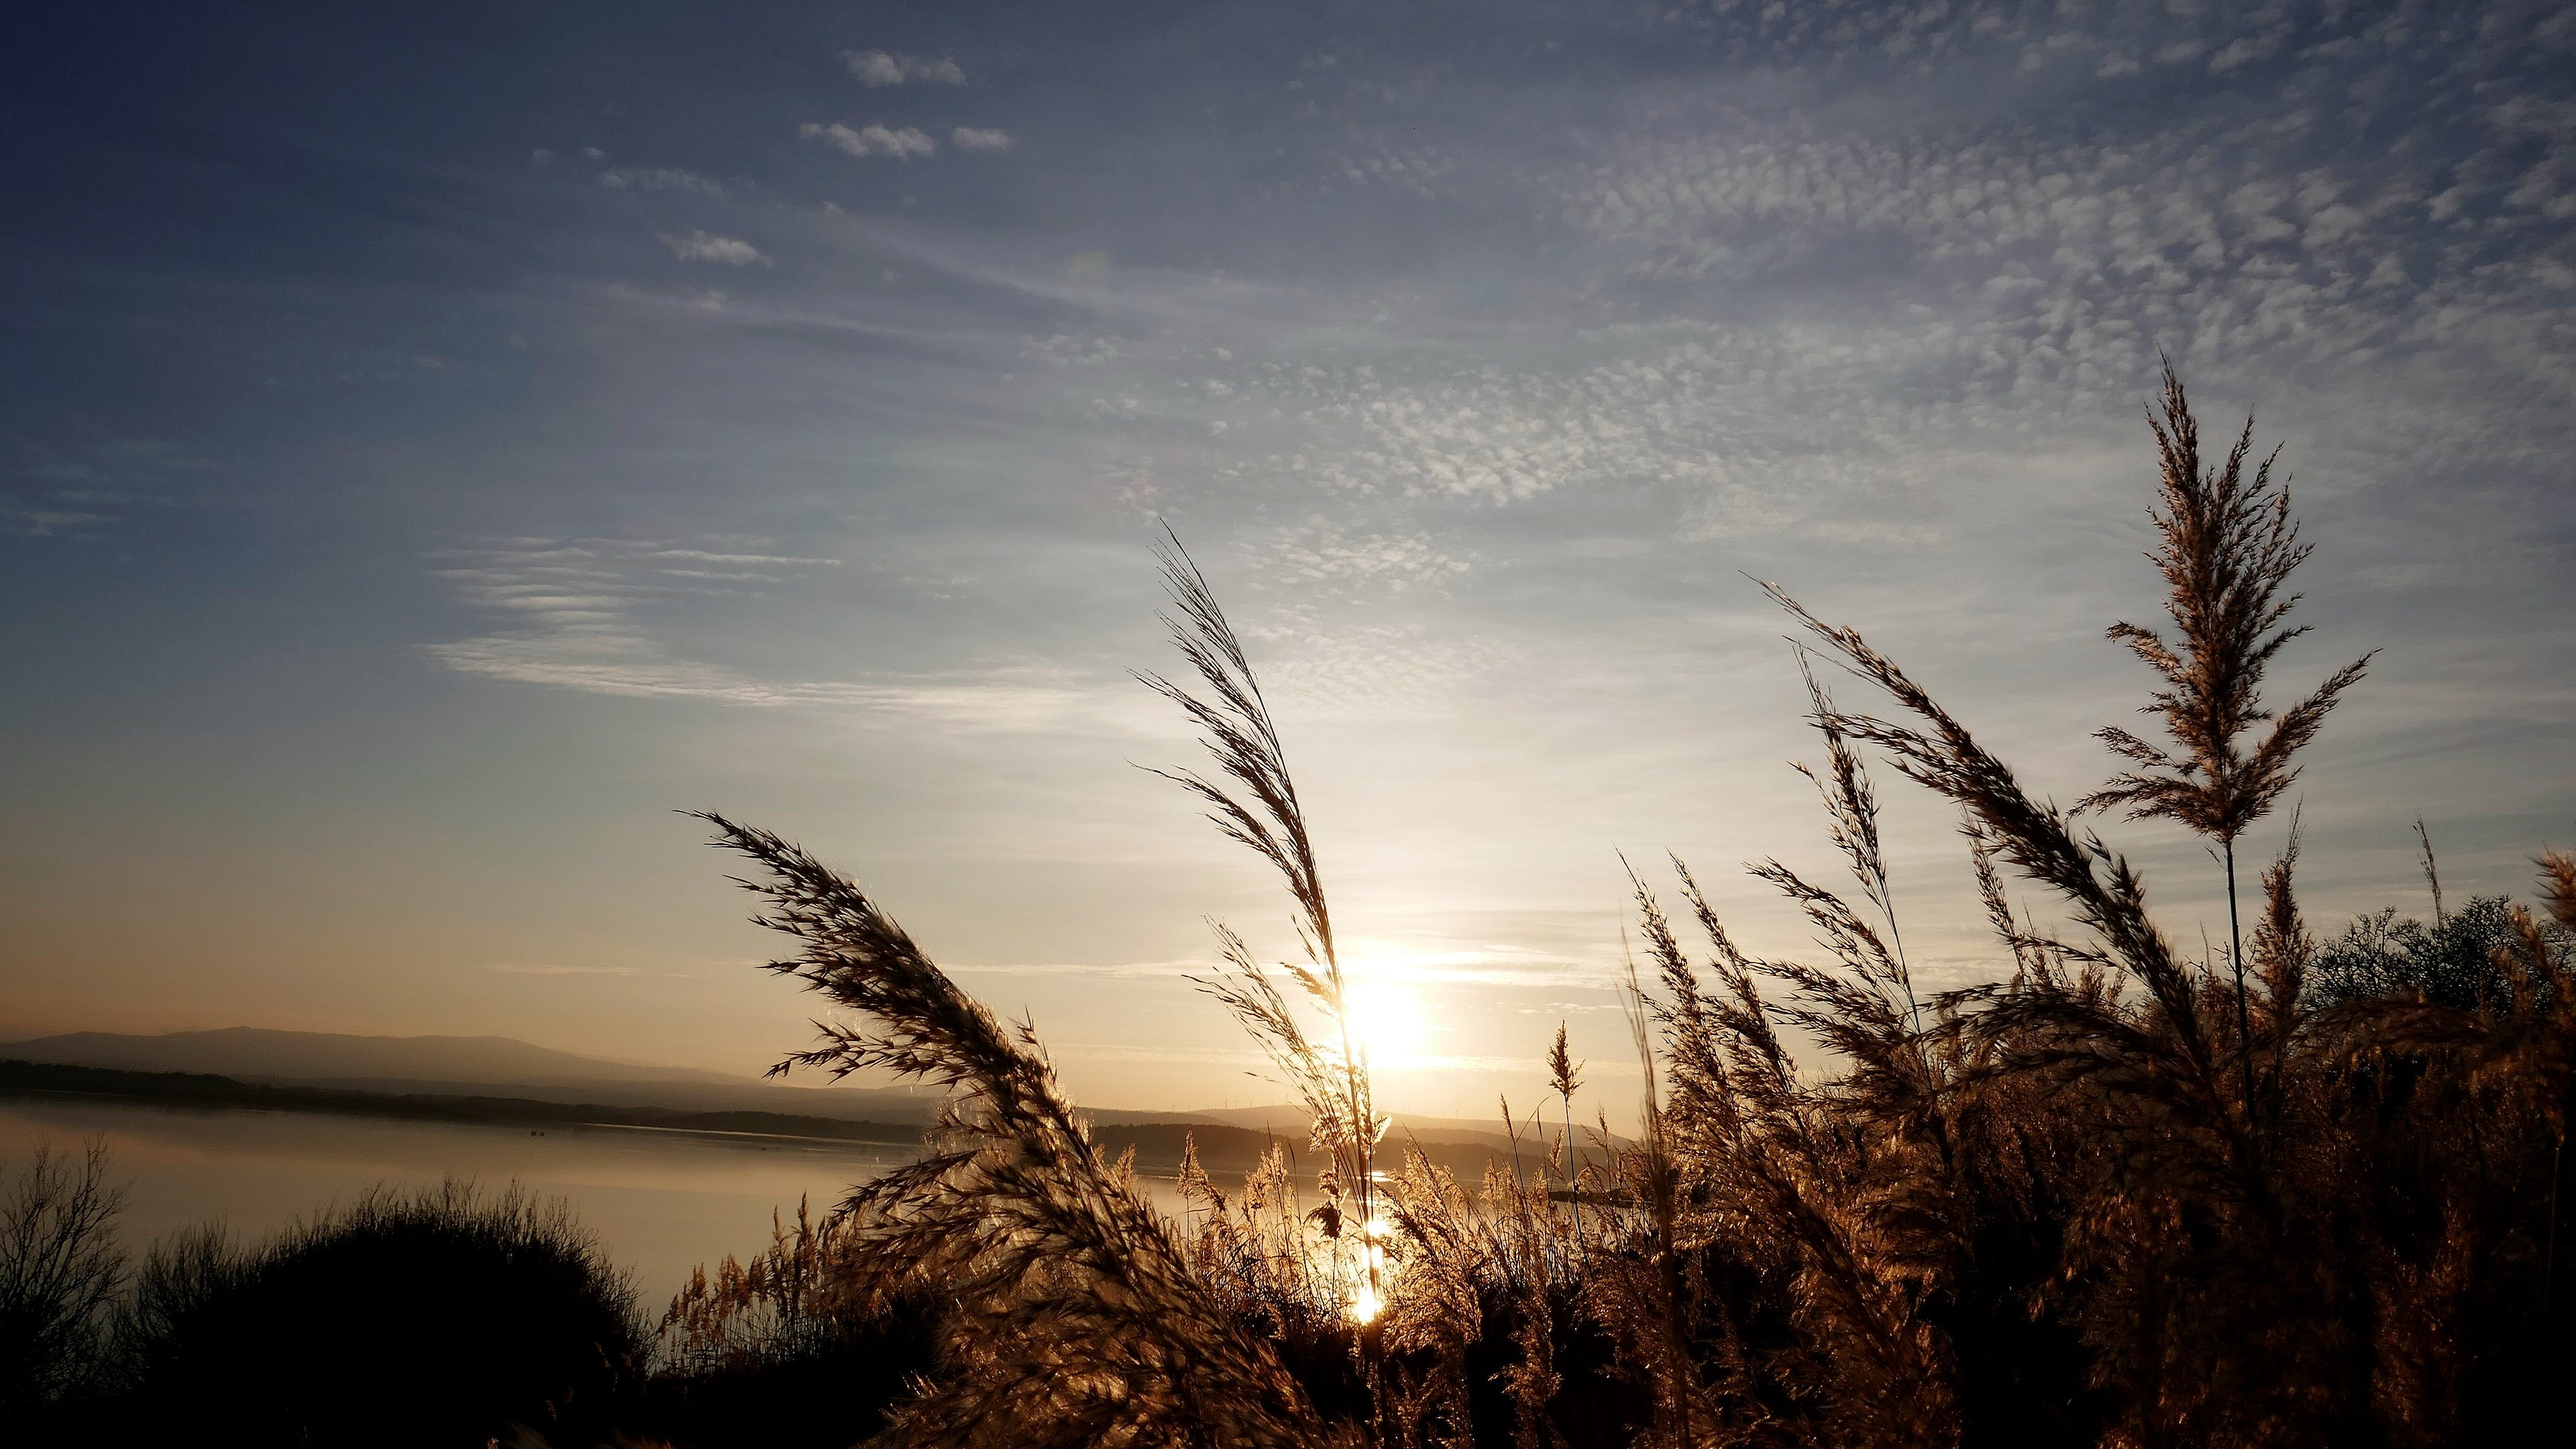 Free stock photo of golden hints, pampa grass in the setting sun